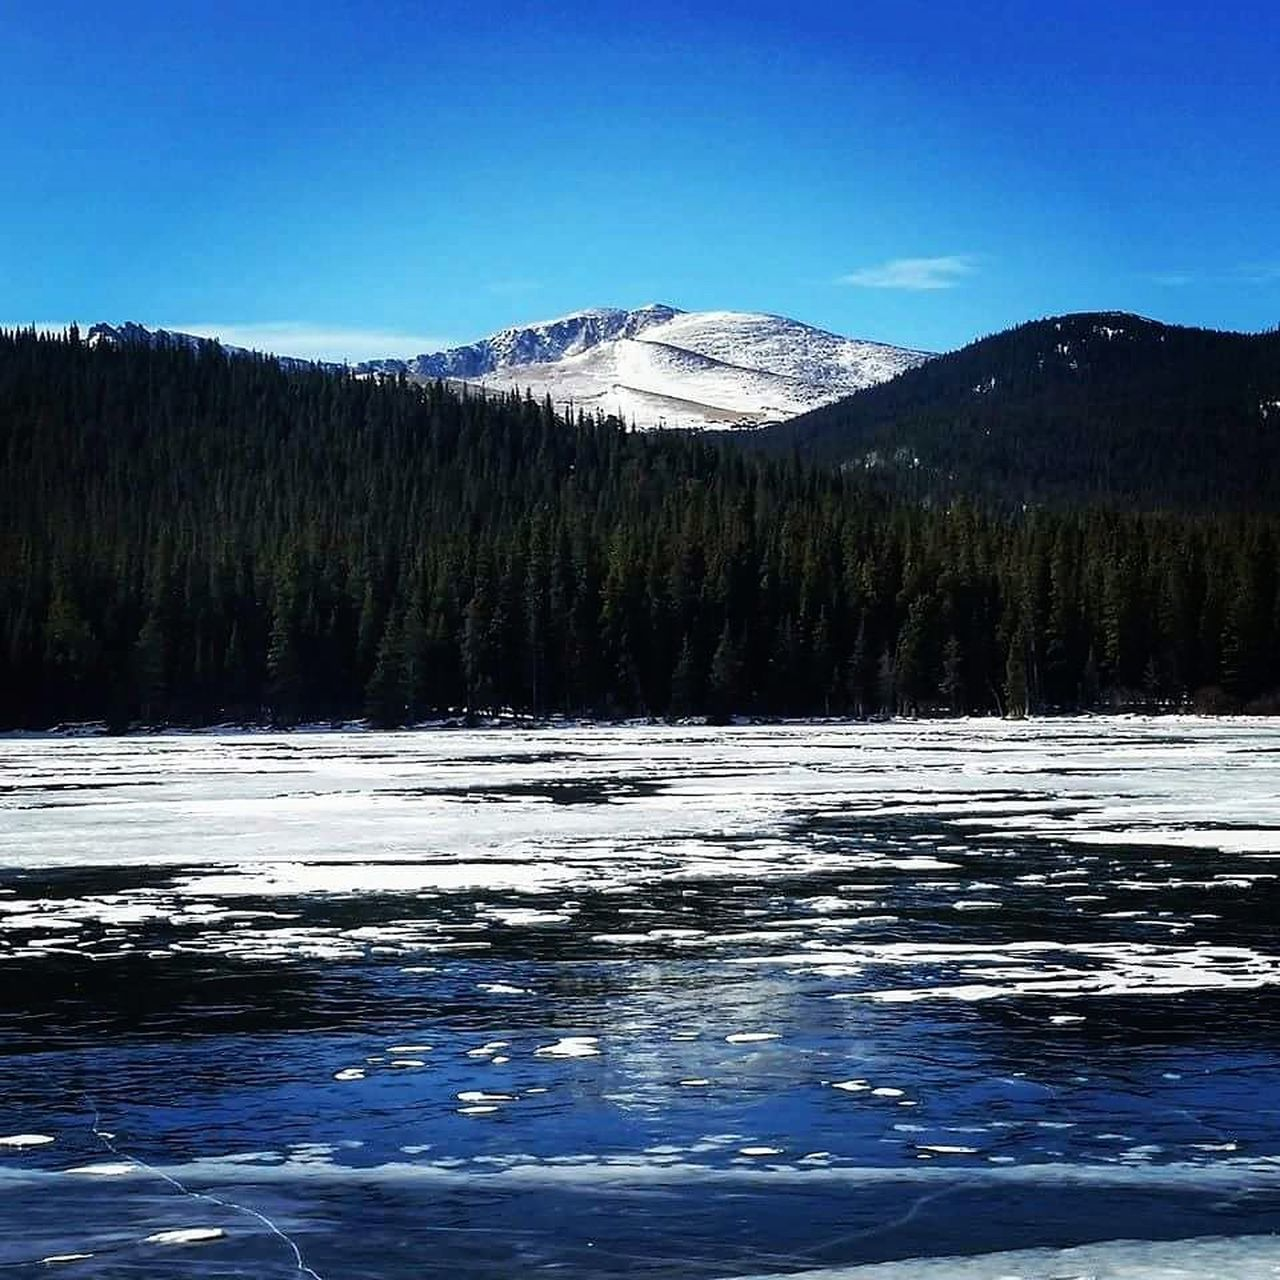 mountain, scenics, tranquil scene, nature, beauty in nature, tranquility, snow, winter, cold temperature, no people, tree, water, outdoors, day, forest, mountain range, blue, lake, clear sky, sky